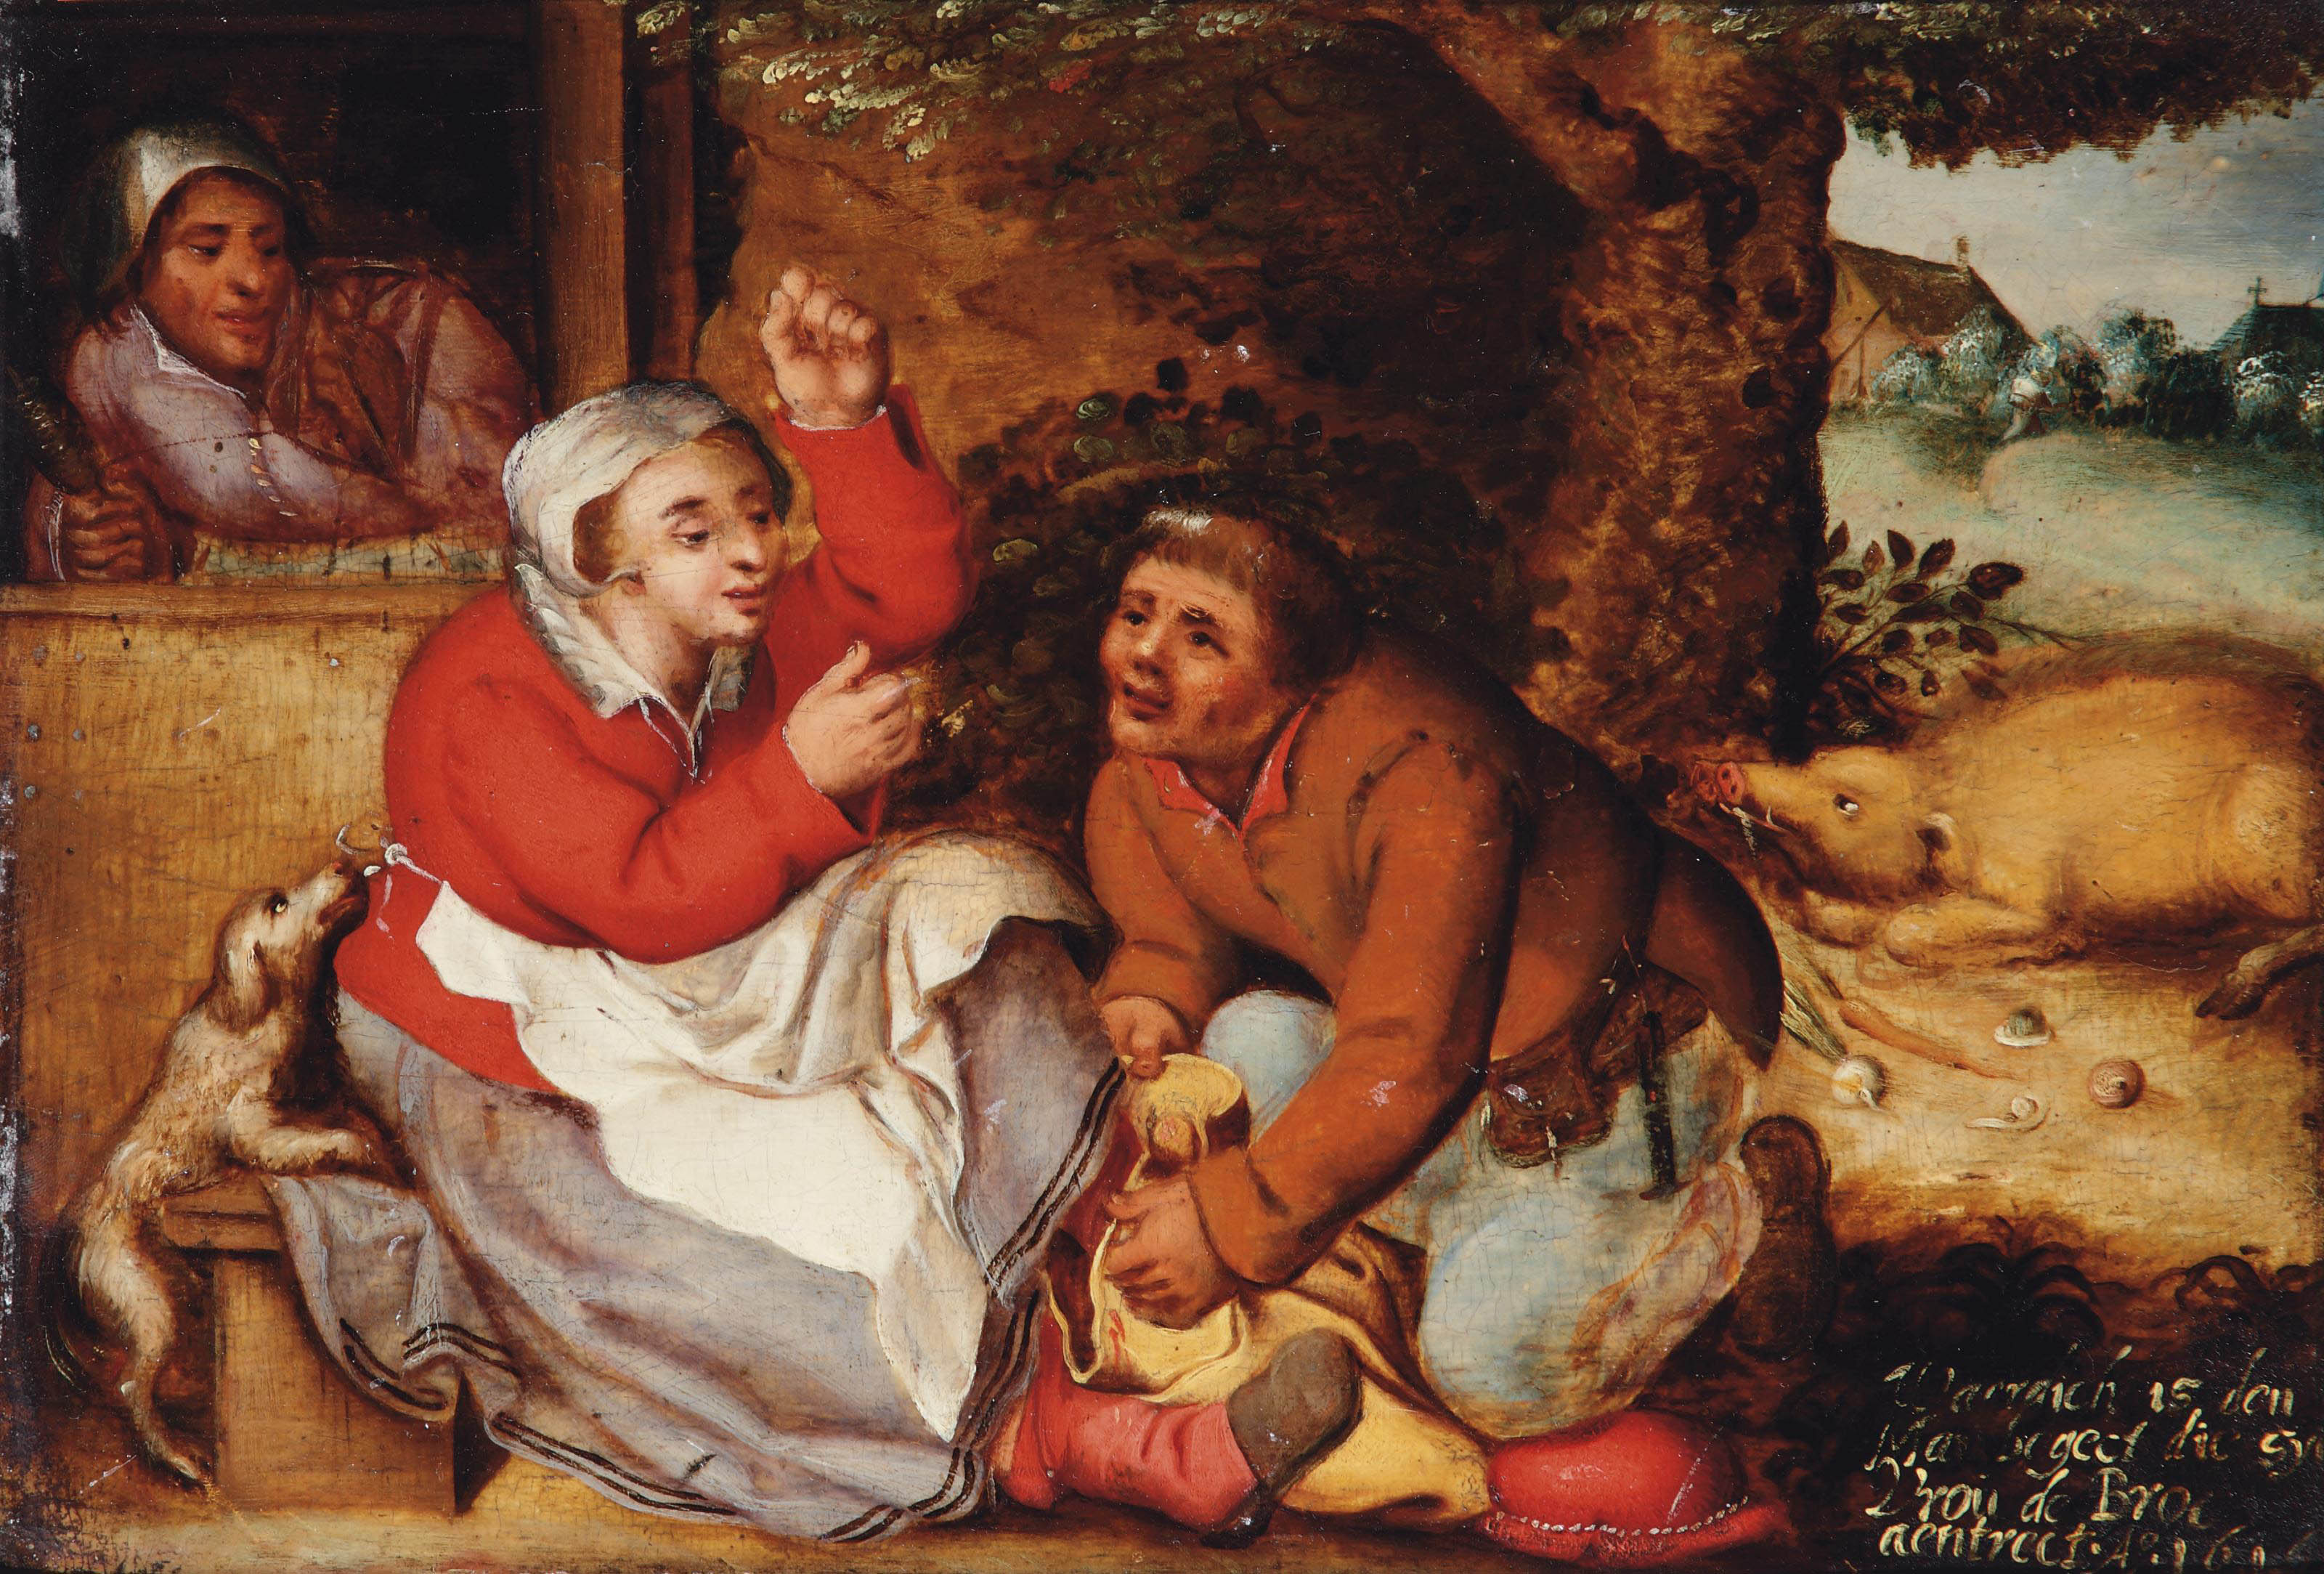 A peasant couple together with a pig and a dog near a house with a spinster in a door opening